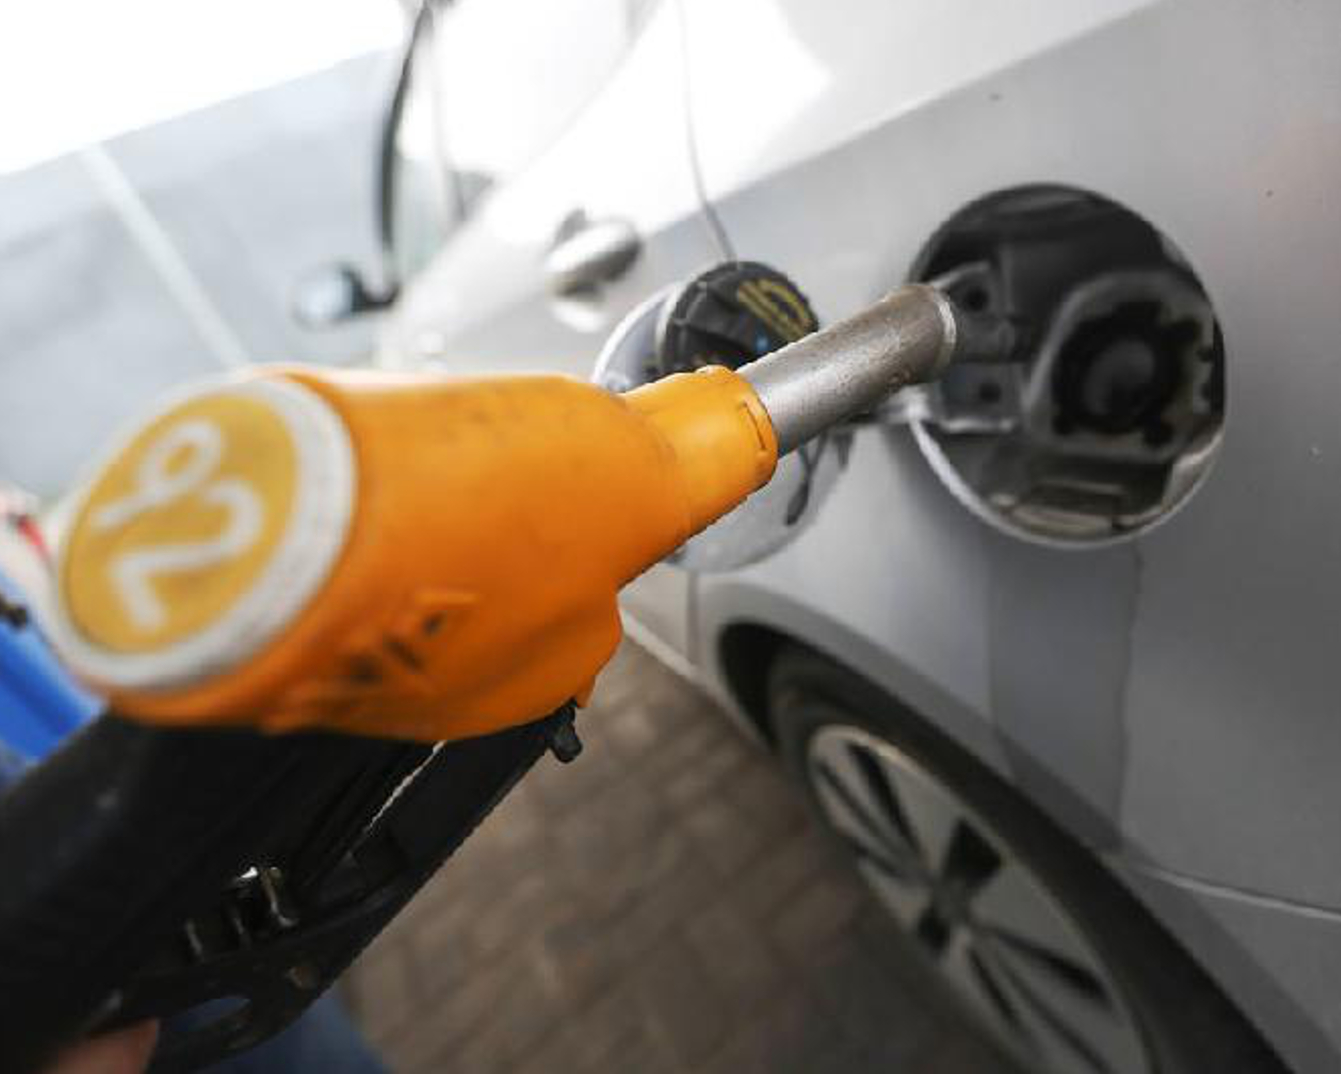 KMG filling station chain selling AI-92 gasoline without restraint